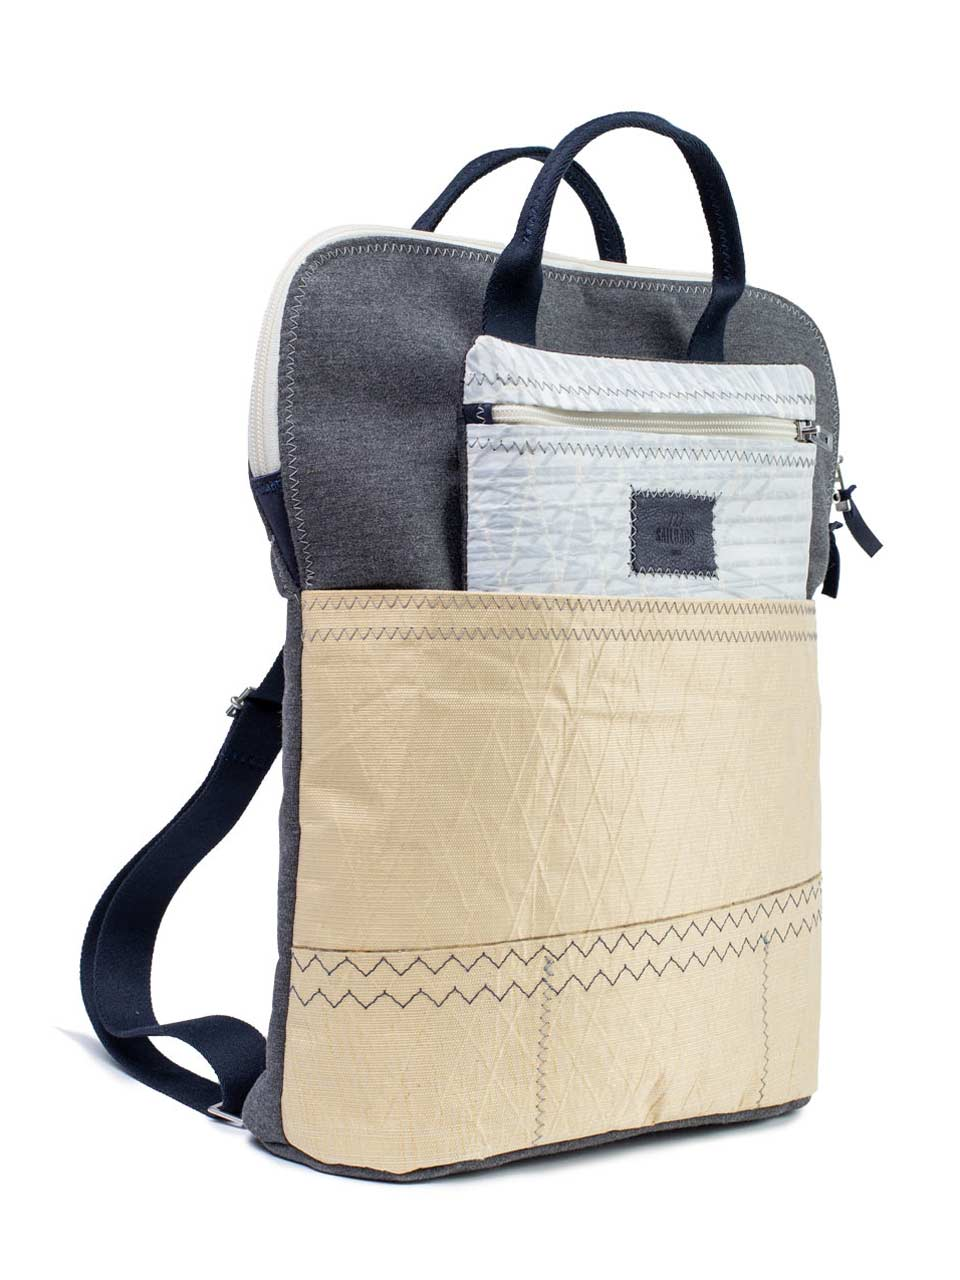 sac Gabrielle 727Sailbags upcycling voile